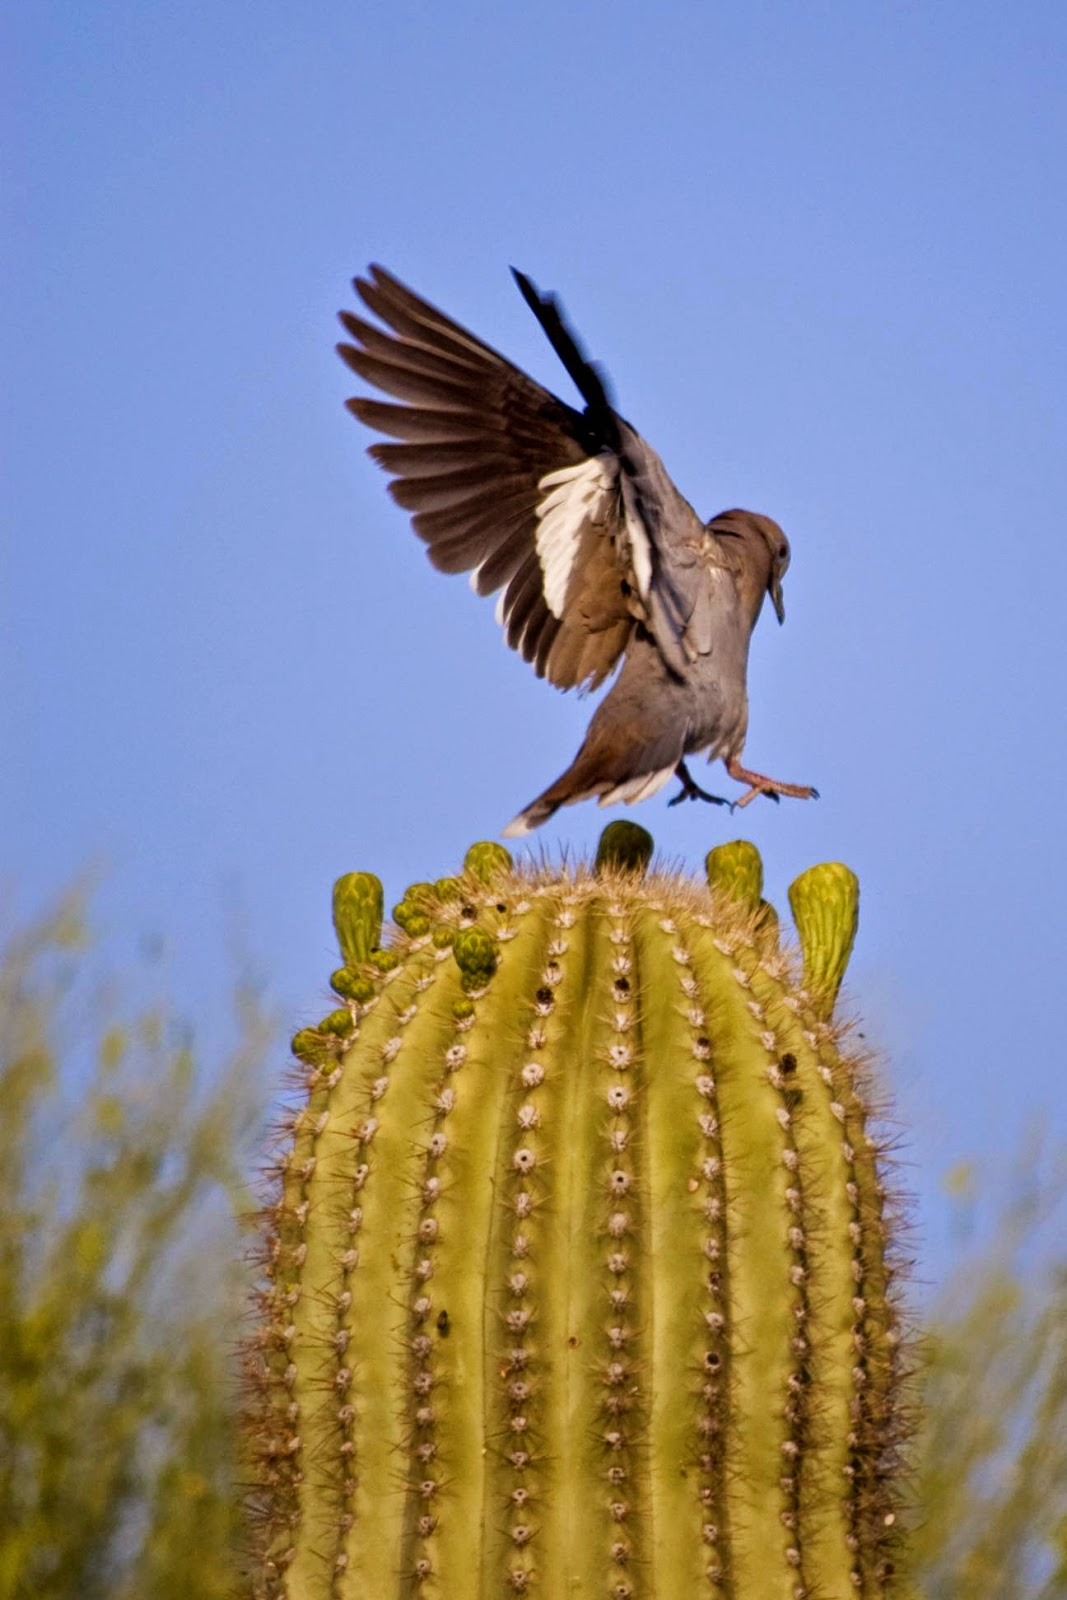 arizona state bird cactus wren and saguaro cactus blossom 50